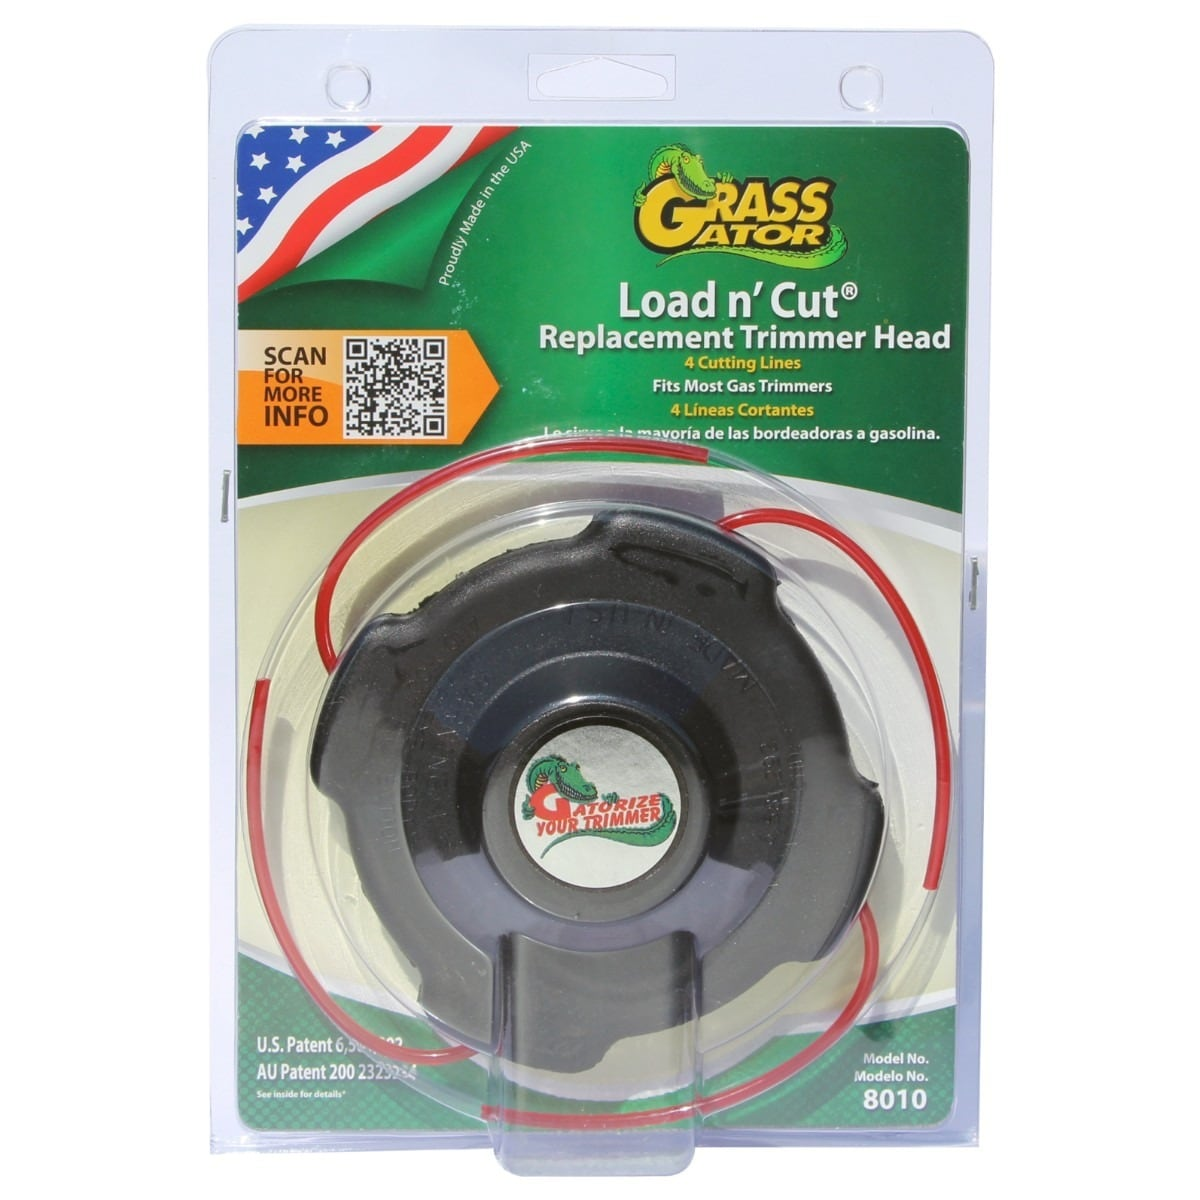 Grass Gator 8010 Load N-foot Cut Trim Line Replacement He...